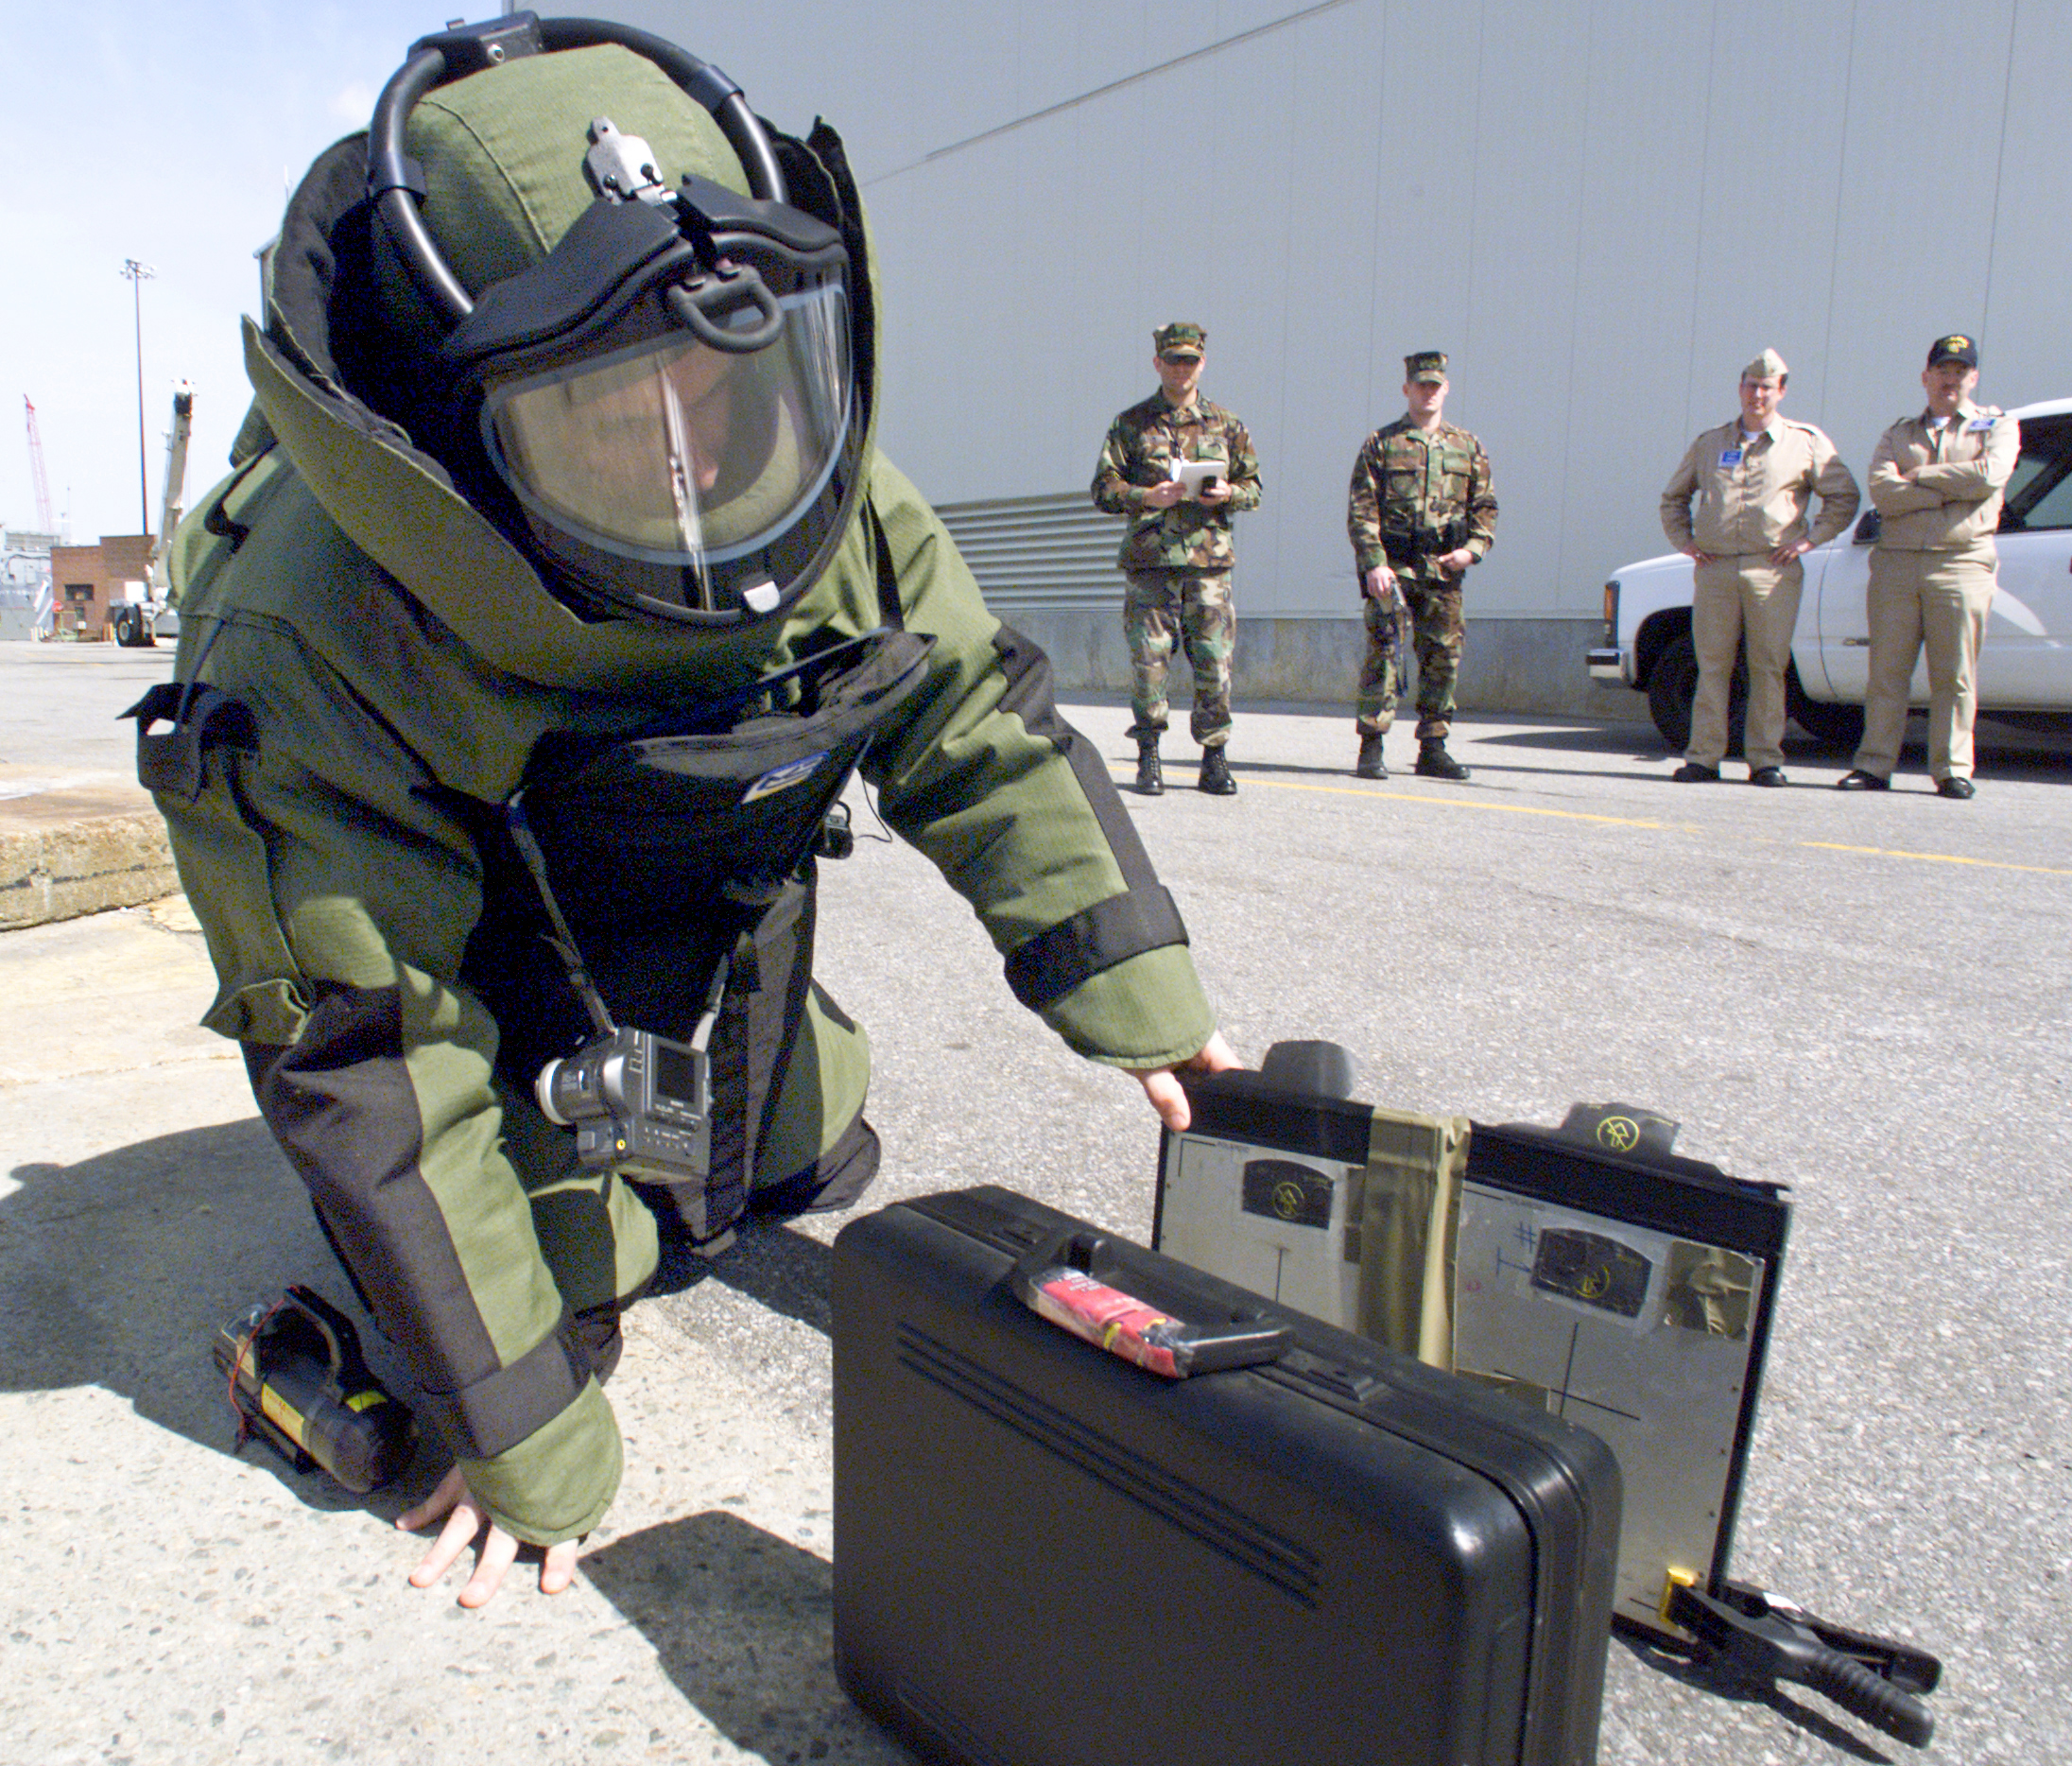 File:US Navy 020411-N-8363-H-023 EOD Training.jpg - Wikimedia Commons